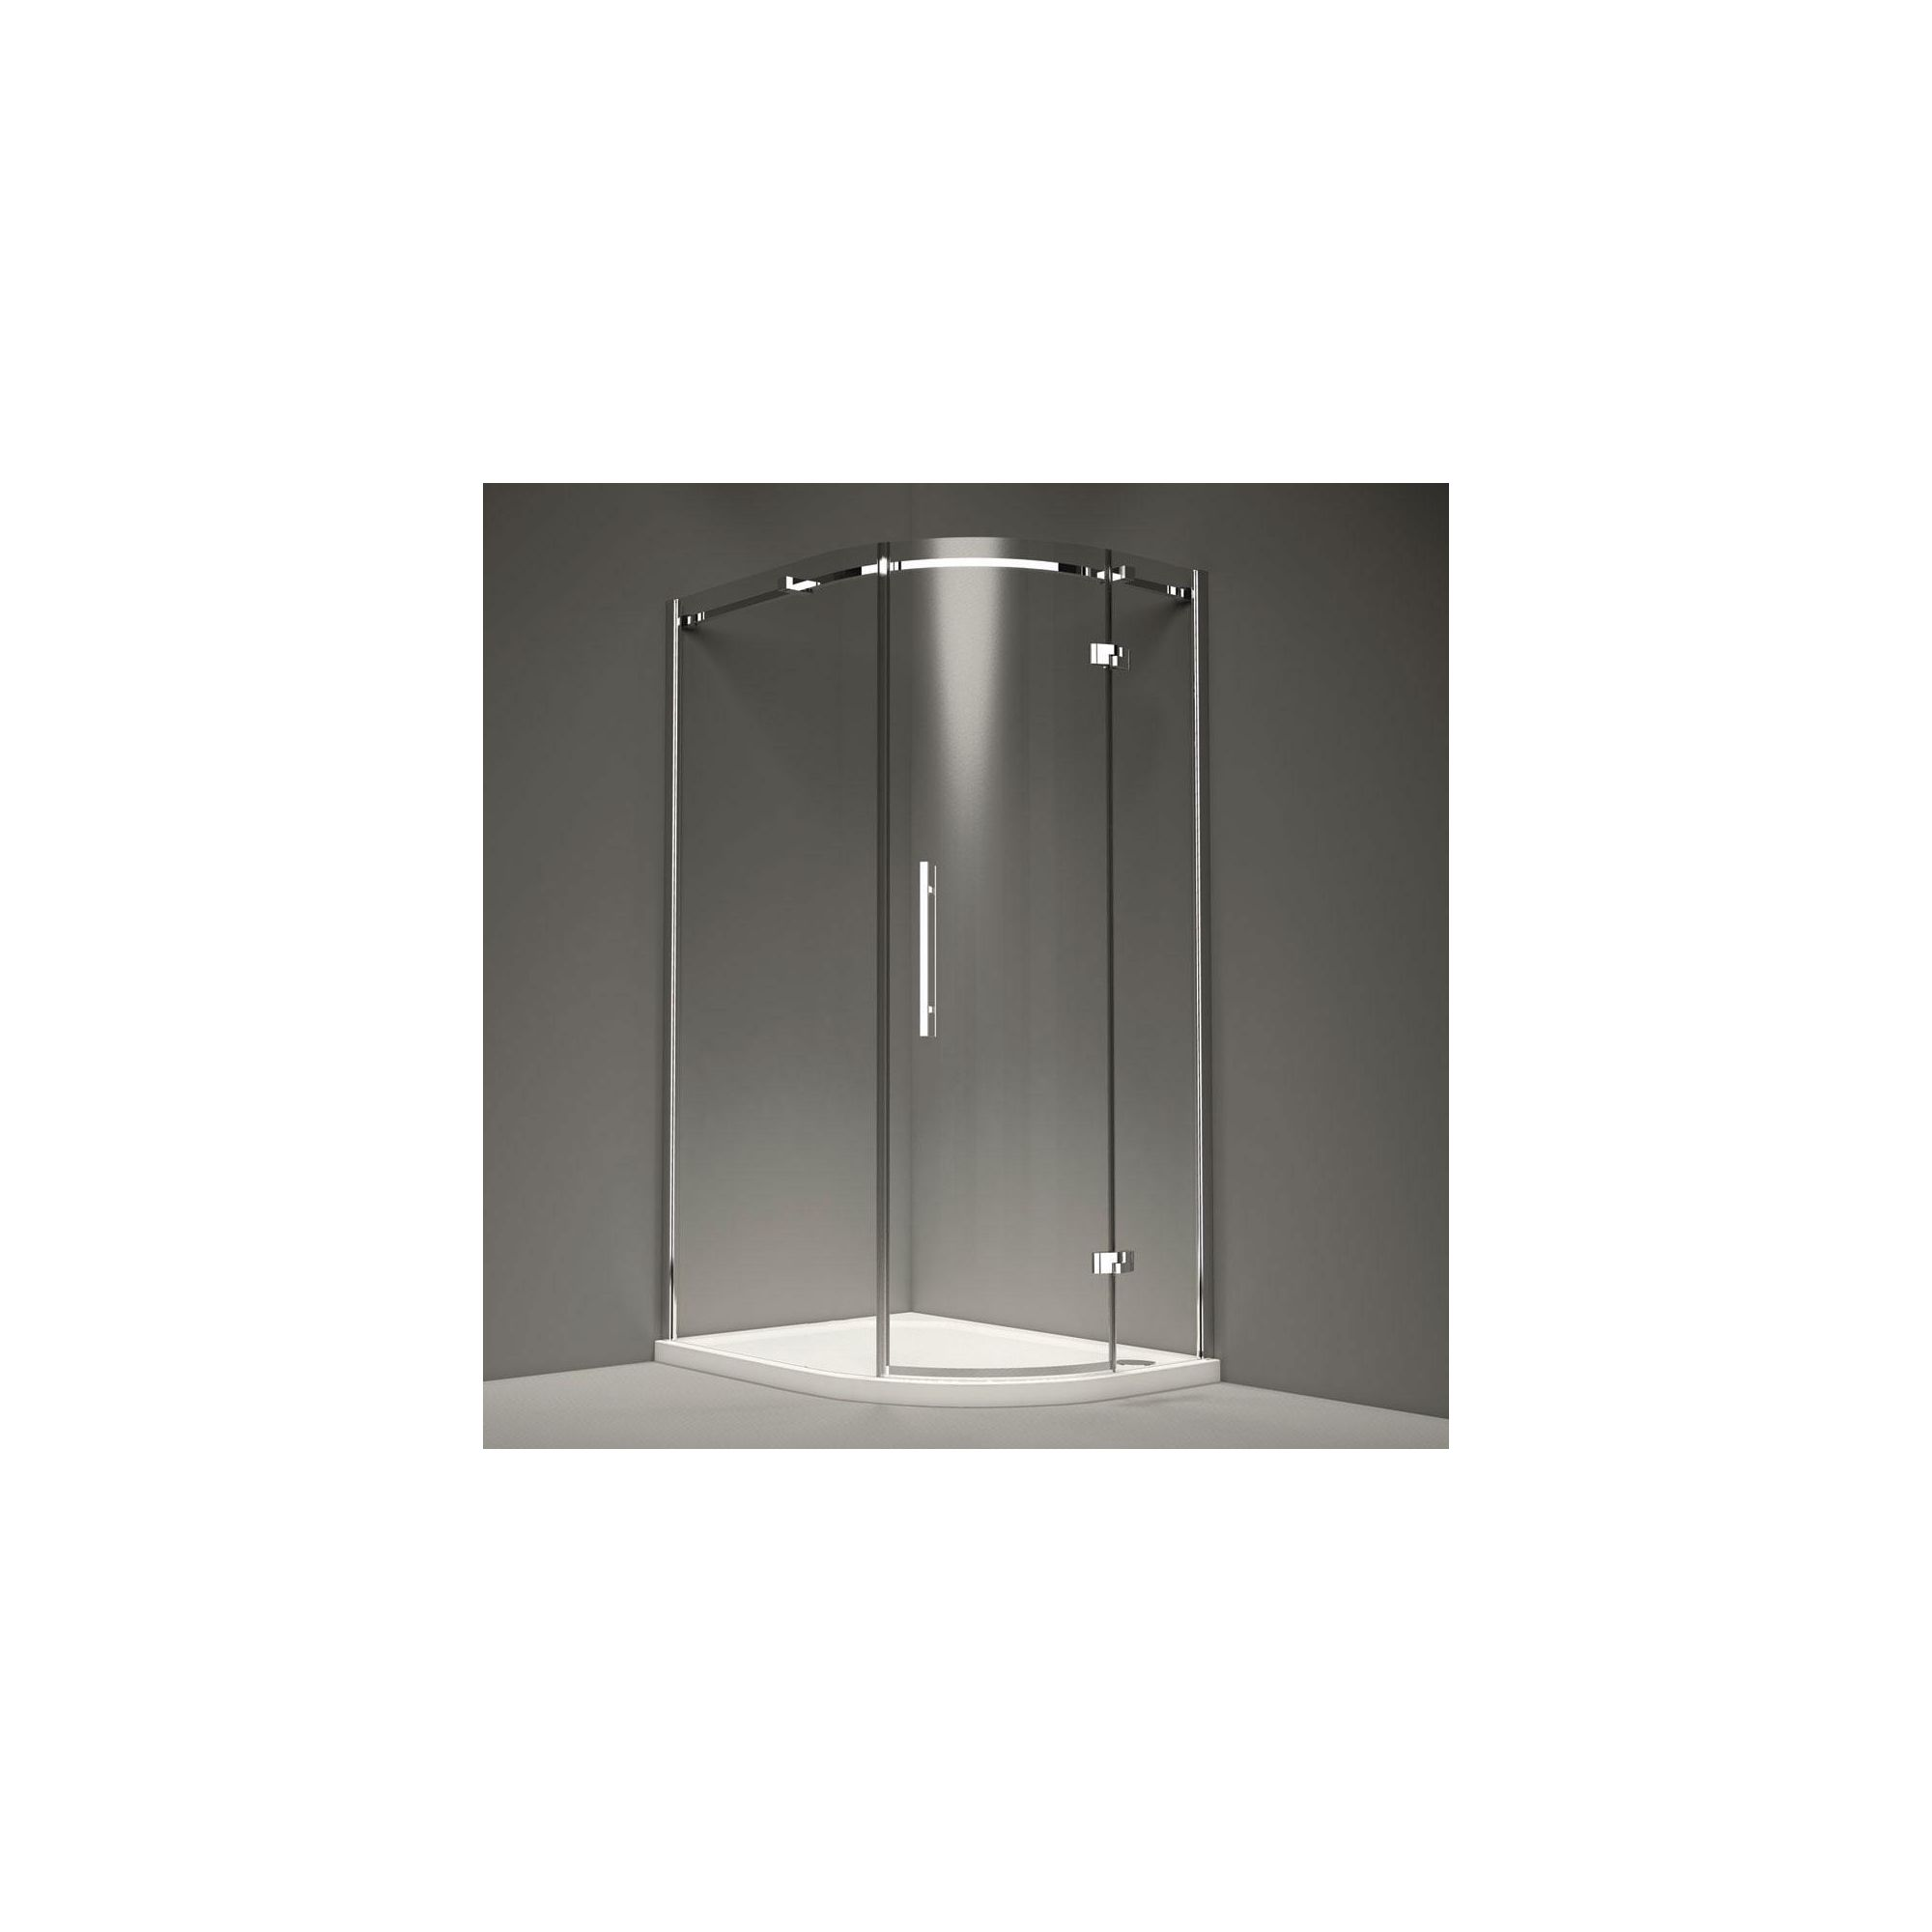 Merlyn Series 9 Offset Quadrant Shower Door, 1000mm x 800mm, 8mm Glass, Right Handed at Tesco Direct